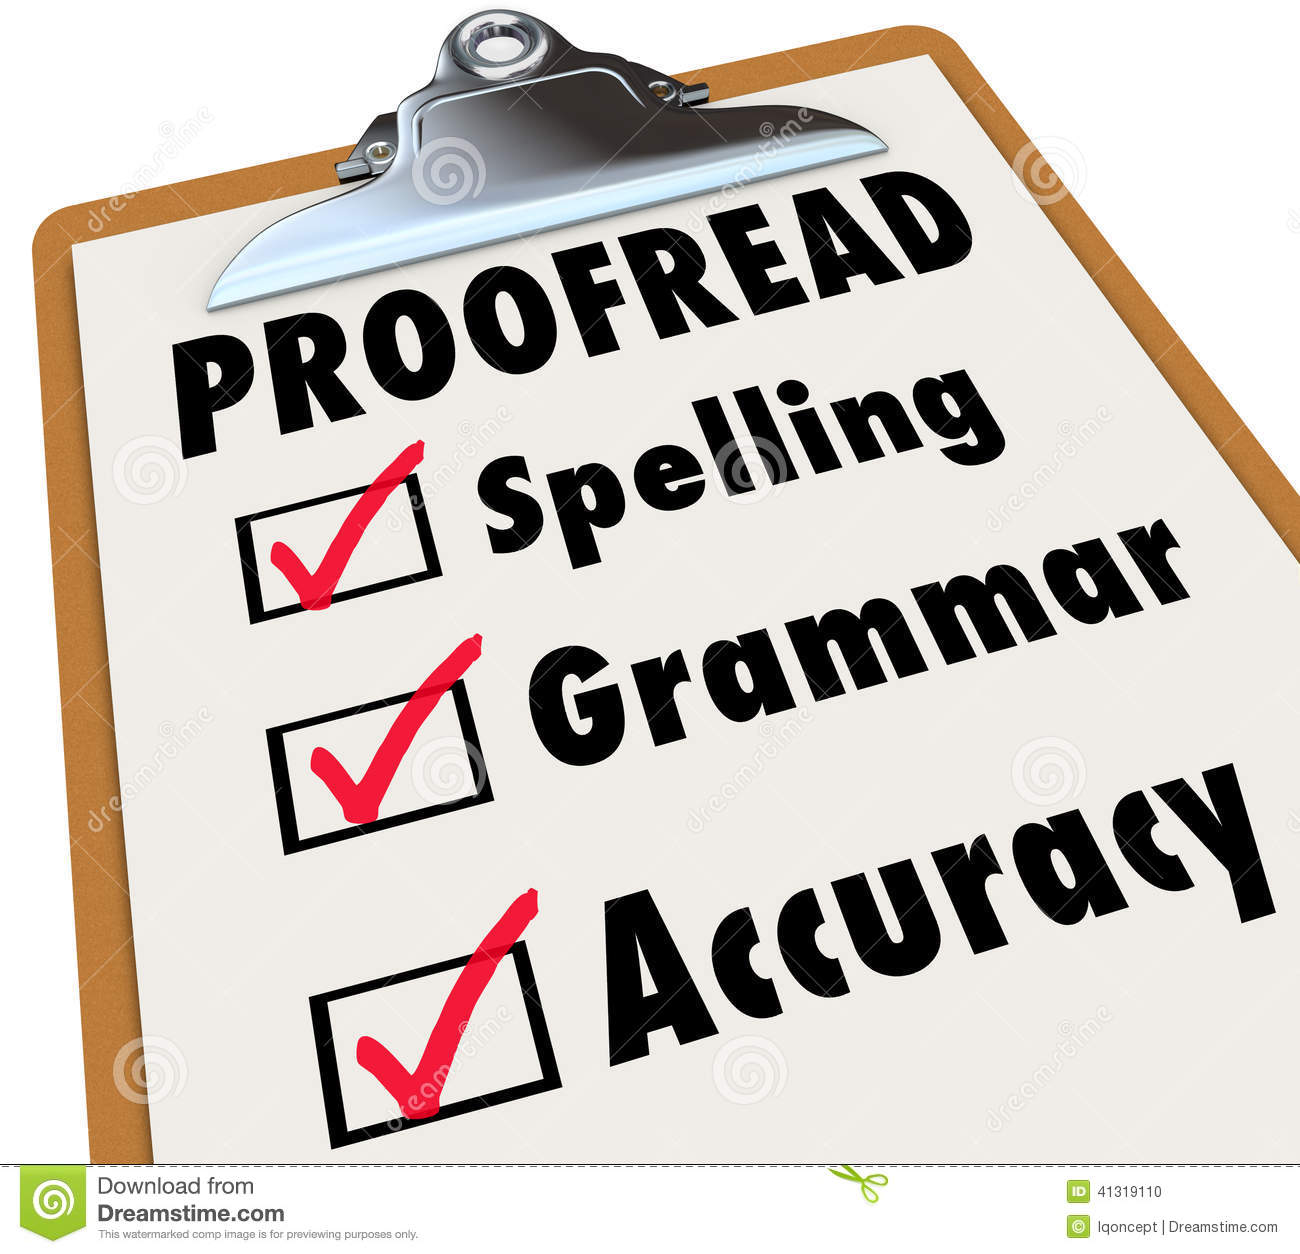 of Writing a Great Essay | Online Editing and Proofreading ...